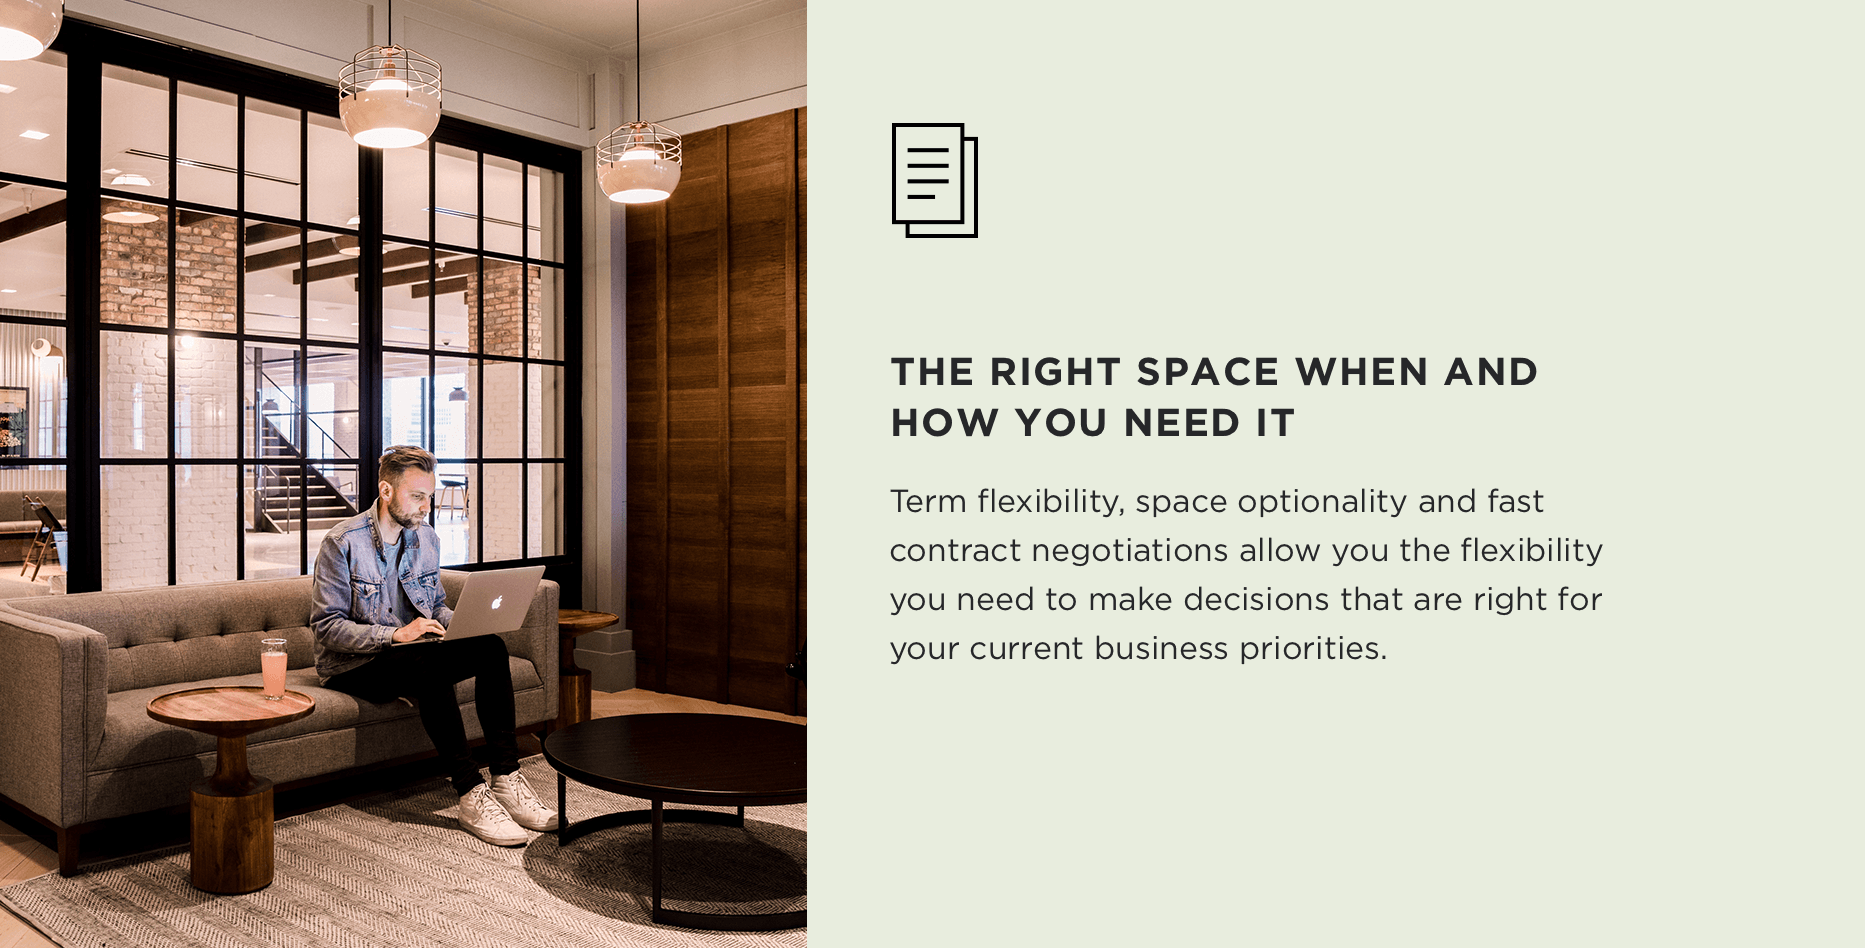 The Right Space When And How You Need It